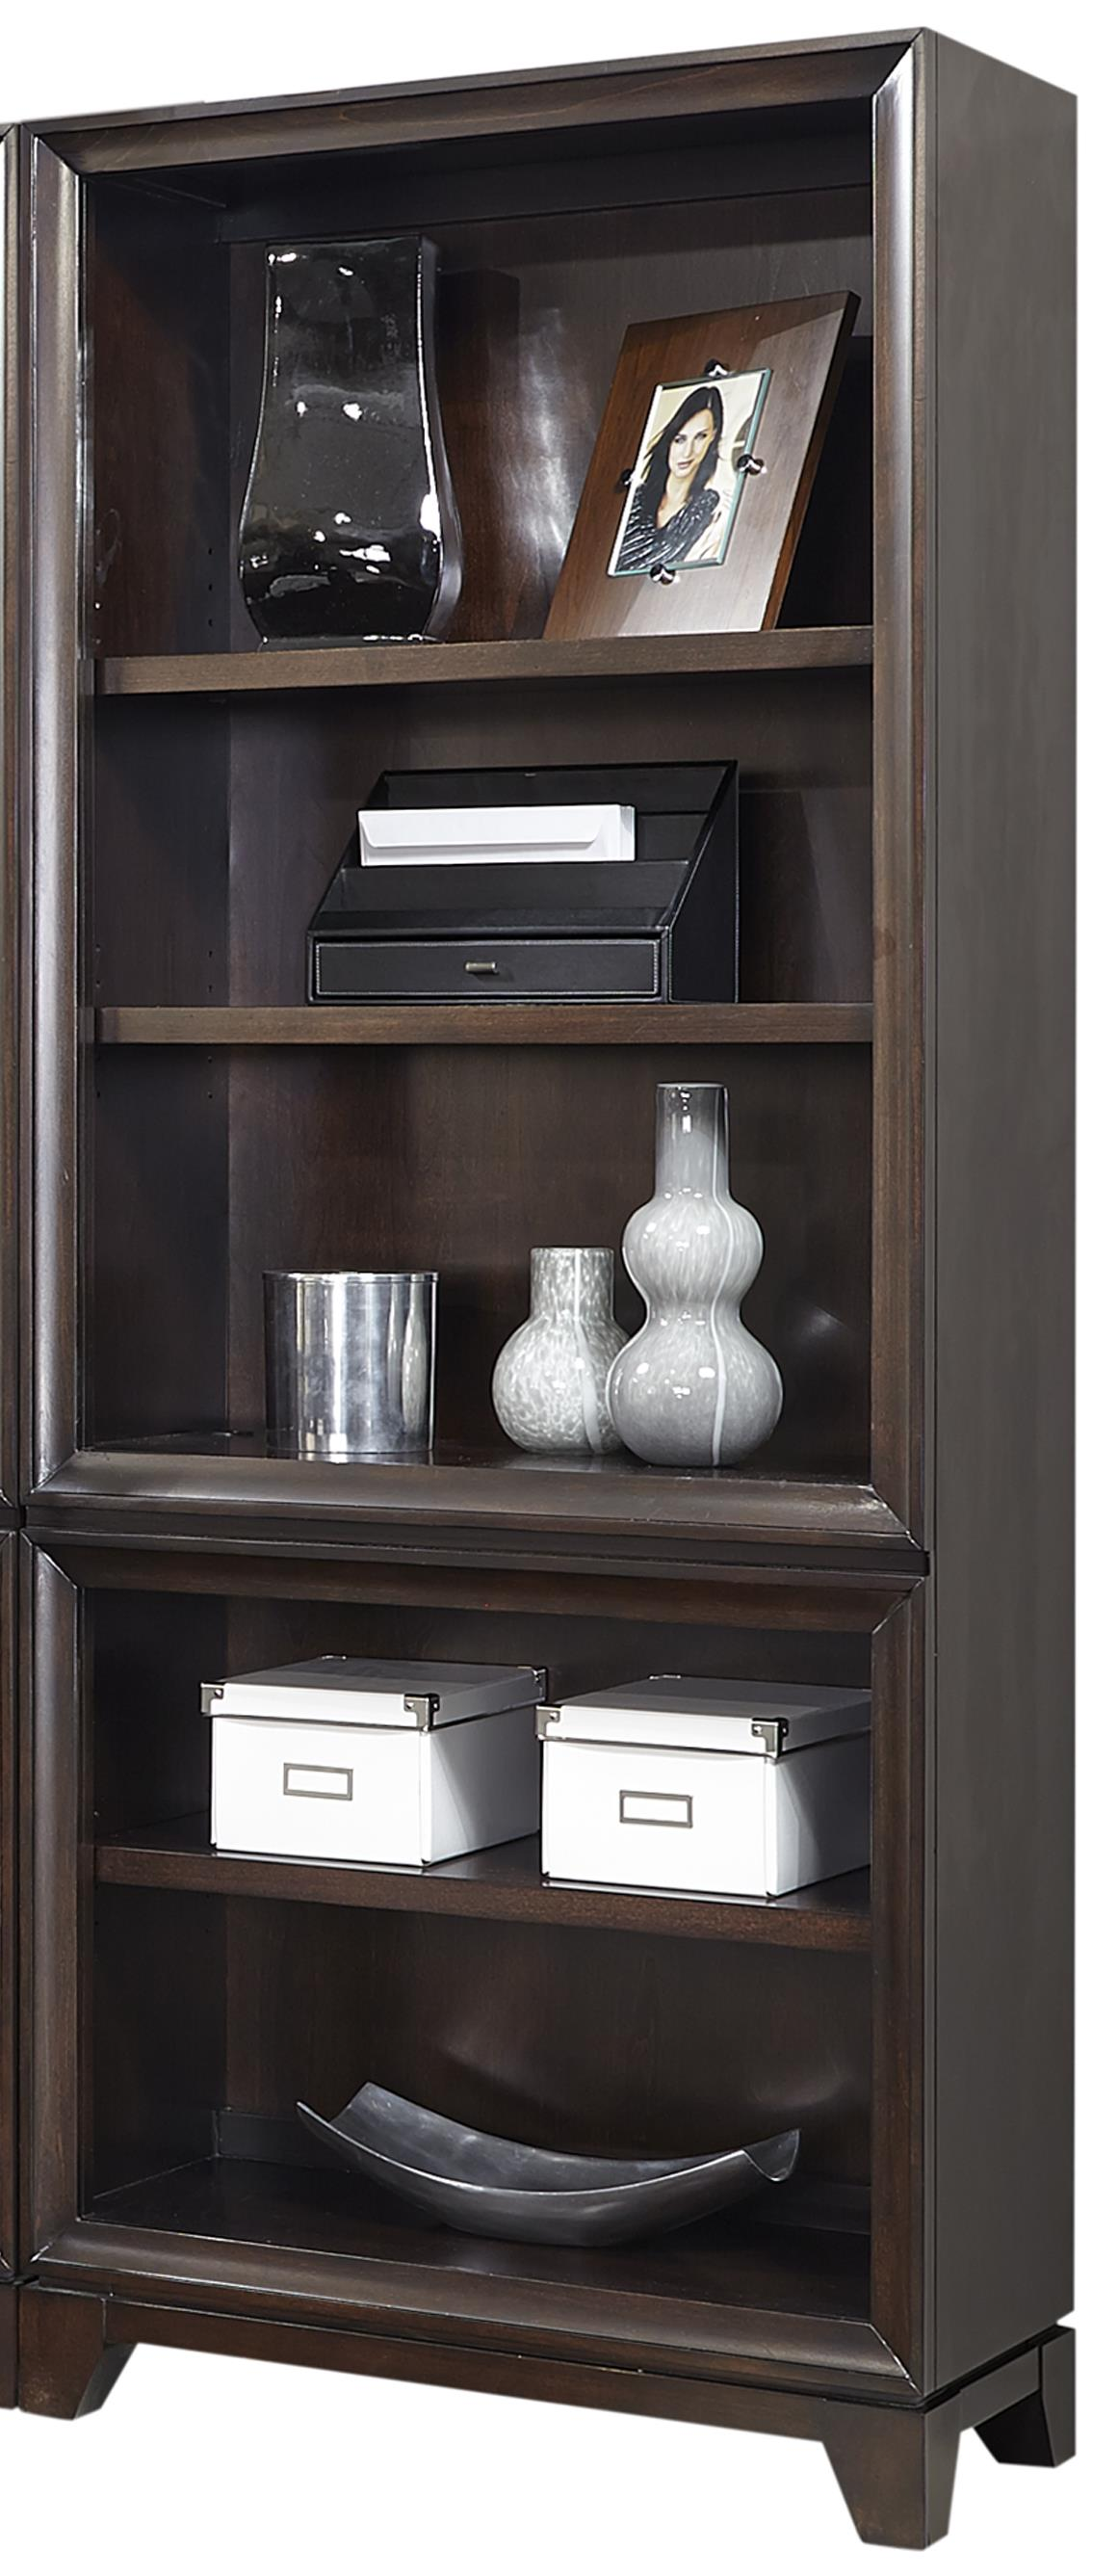 Aspenhome Viewscape Open Bookcase  - Item Number: I73-333